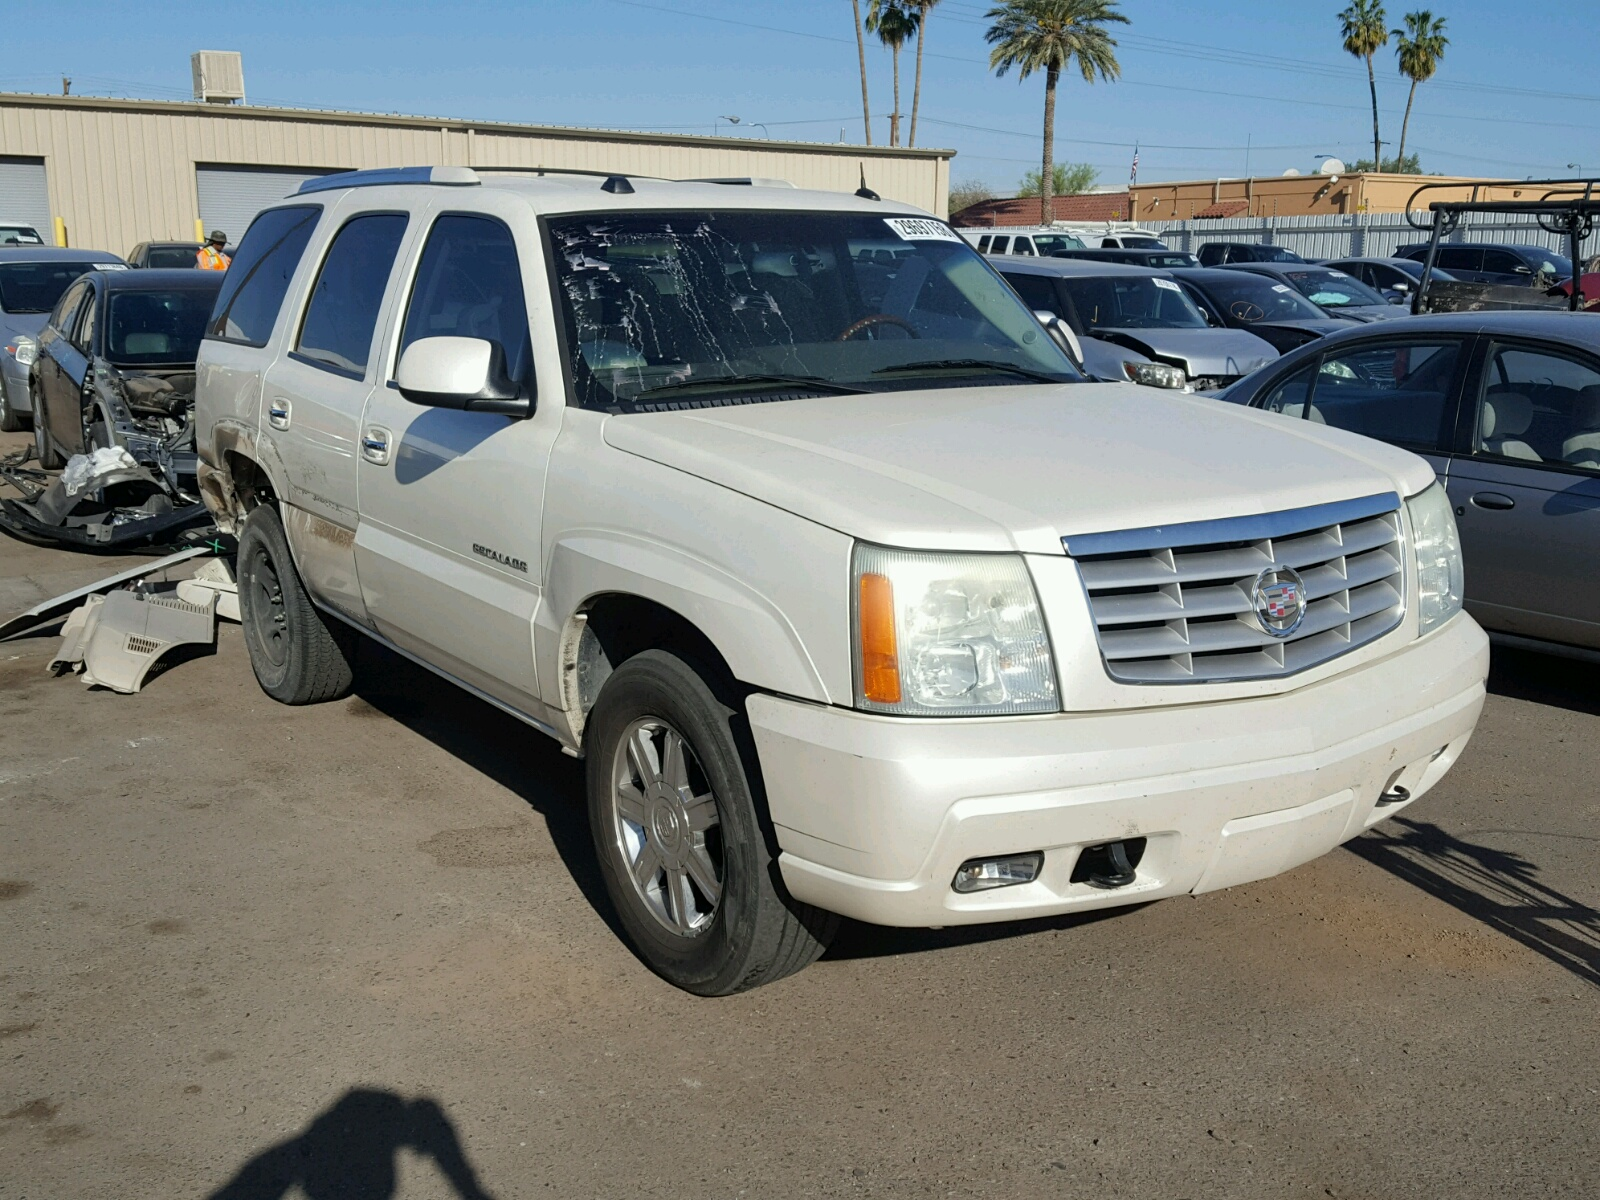 nav for escalade esv item blog suv image car on of update rear cadillac ent sale download s